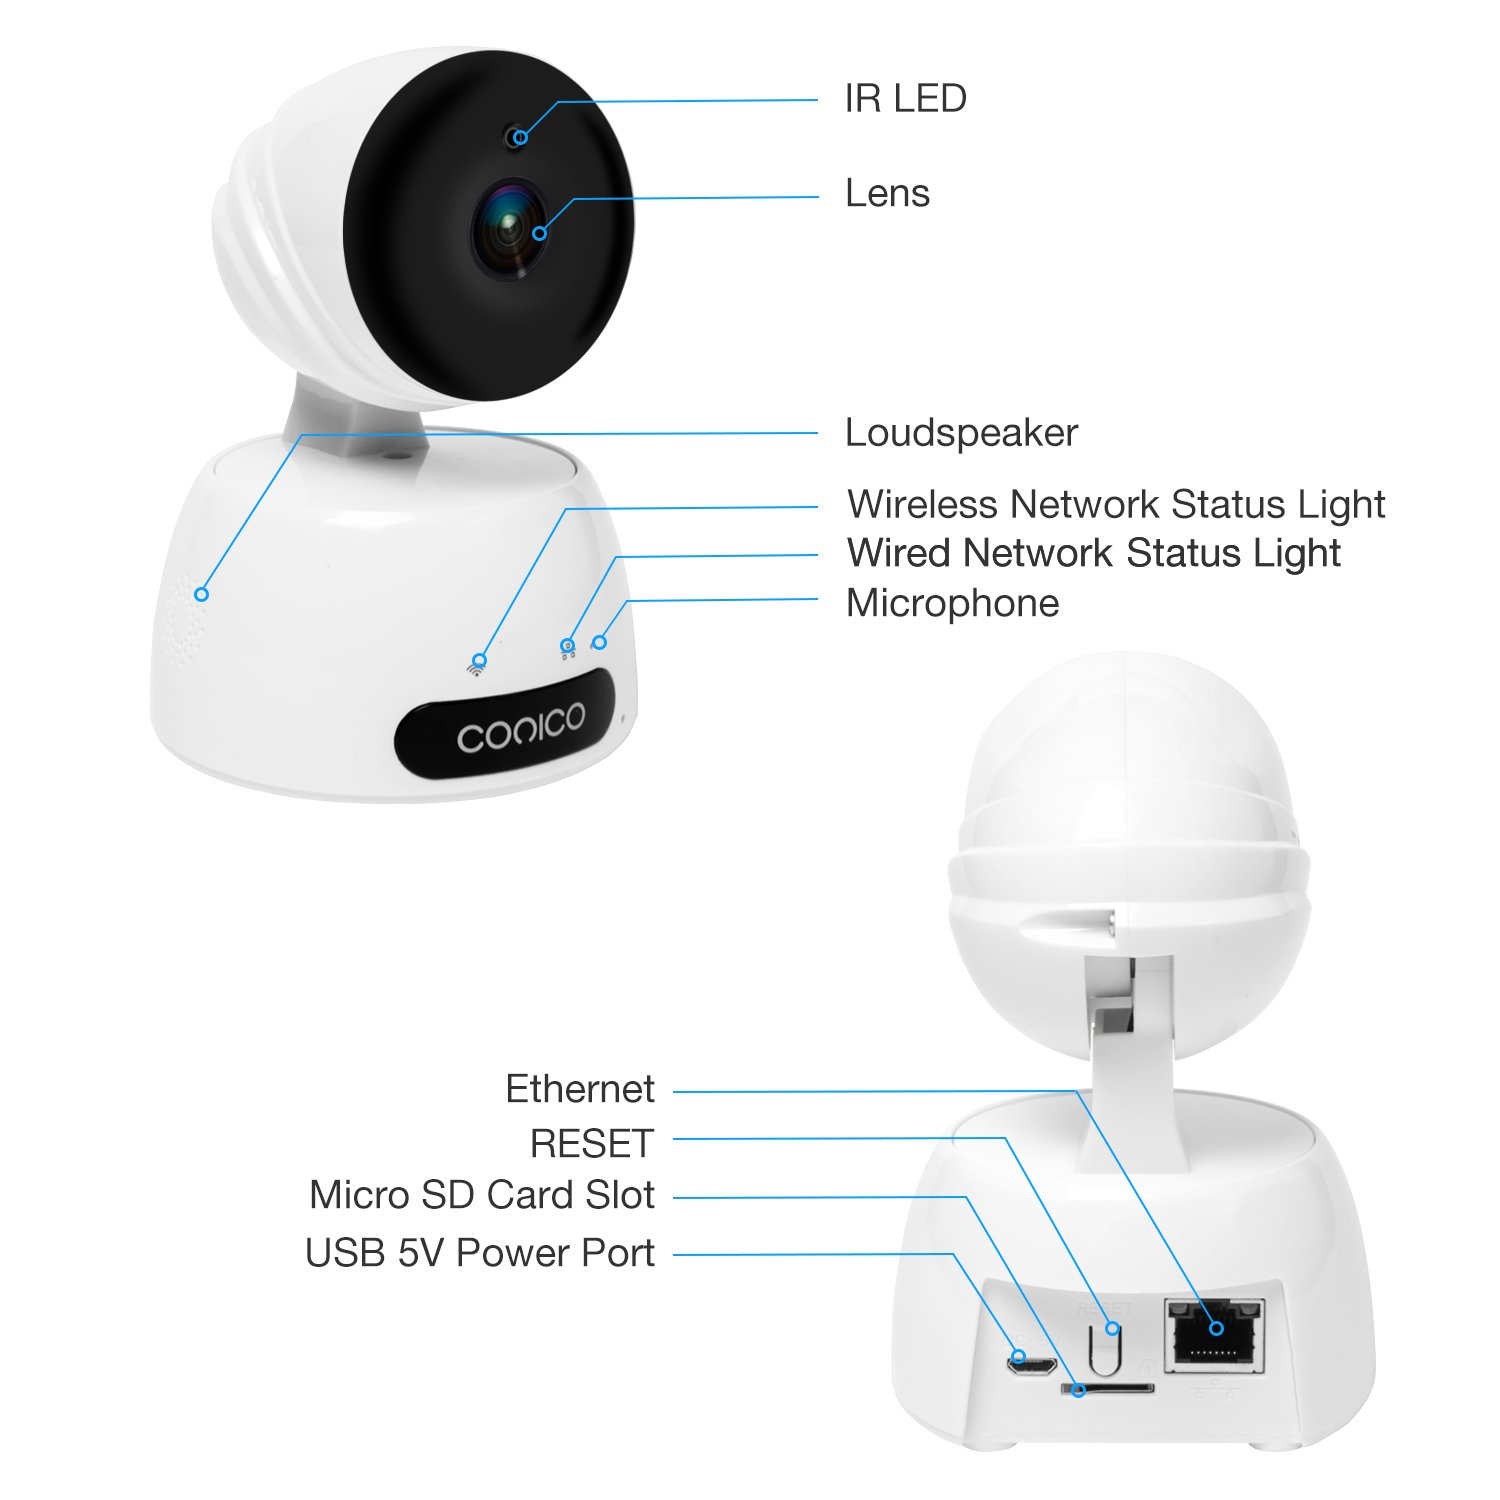 Video Baby Monitor, Conico 1080P Wireless WiFi Surveillance Camera Nanny Cam with Two Way Audio Night Vision Motion Detect Remote Viewing Pan Tilt Zoom for iPhone and Android by Conico (Image #2)